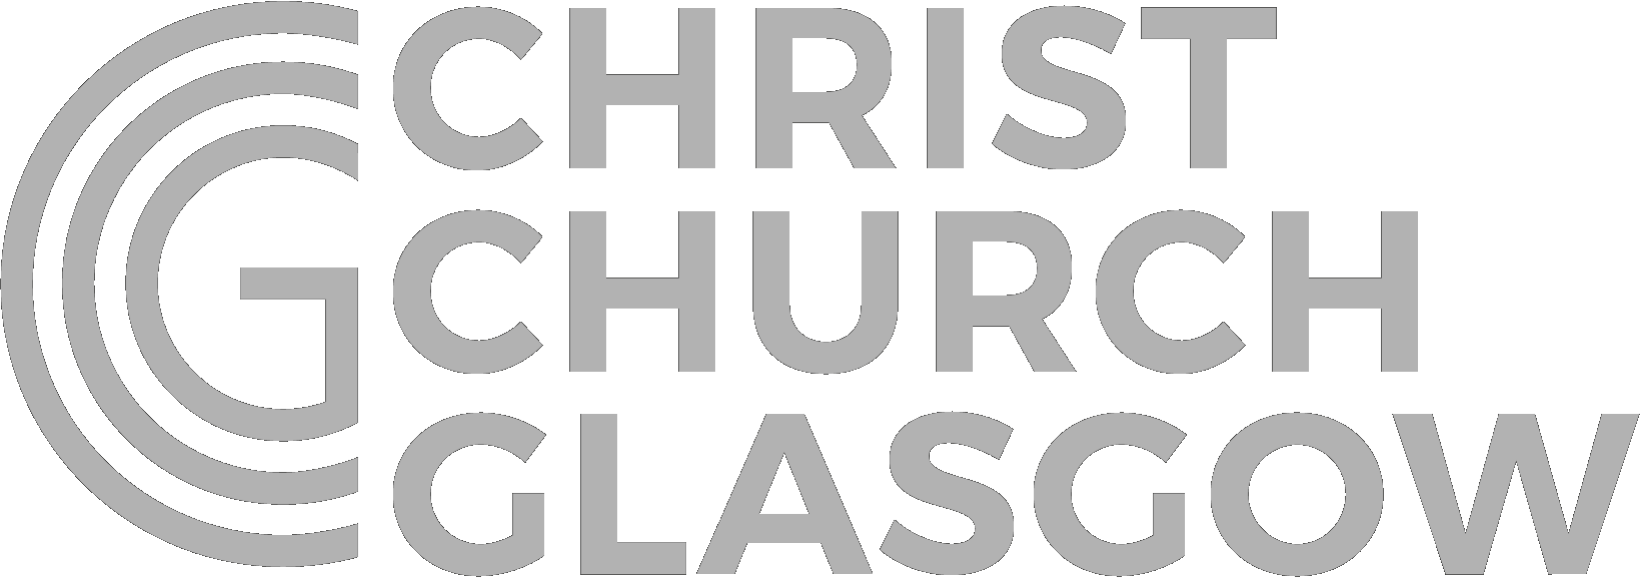 Christ Church Glasgow Logo